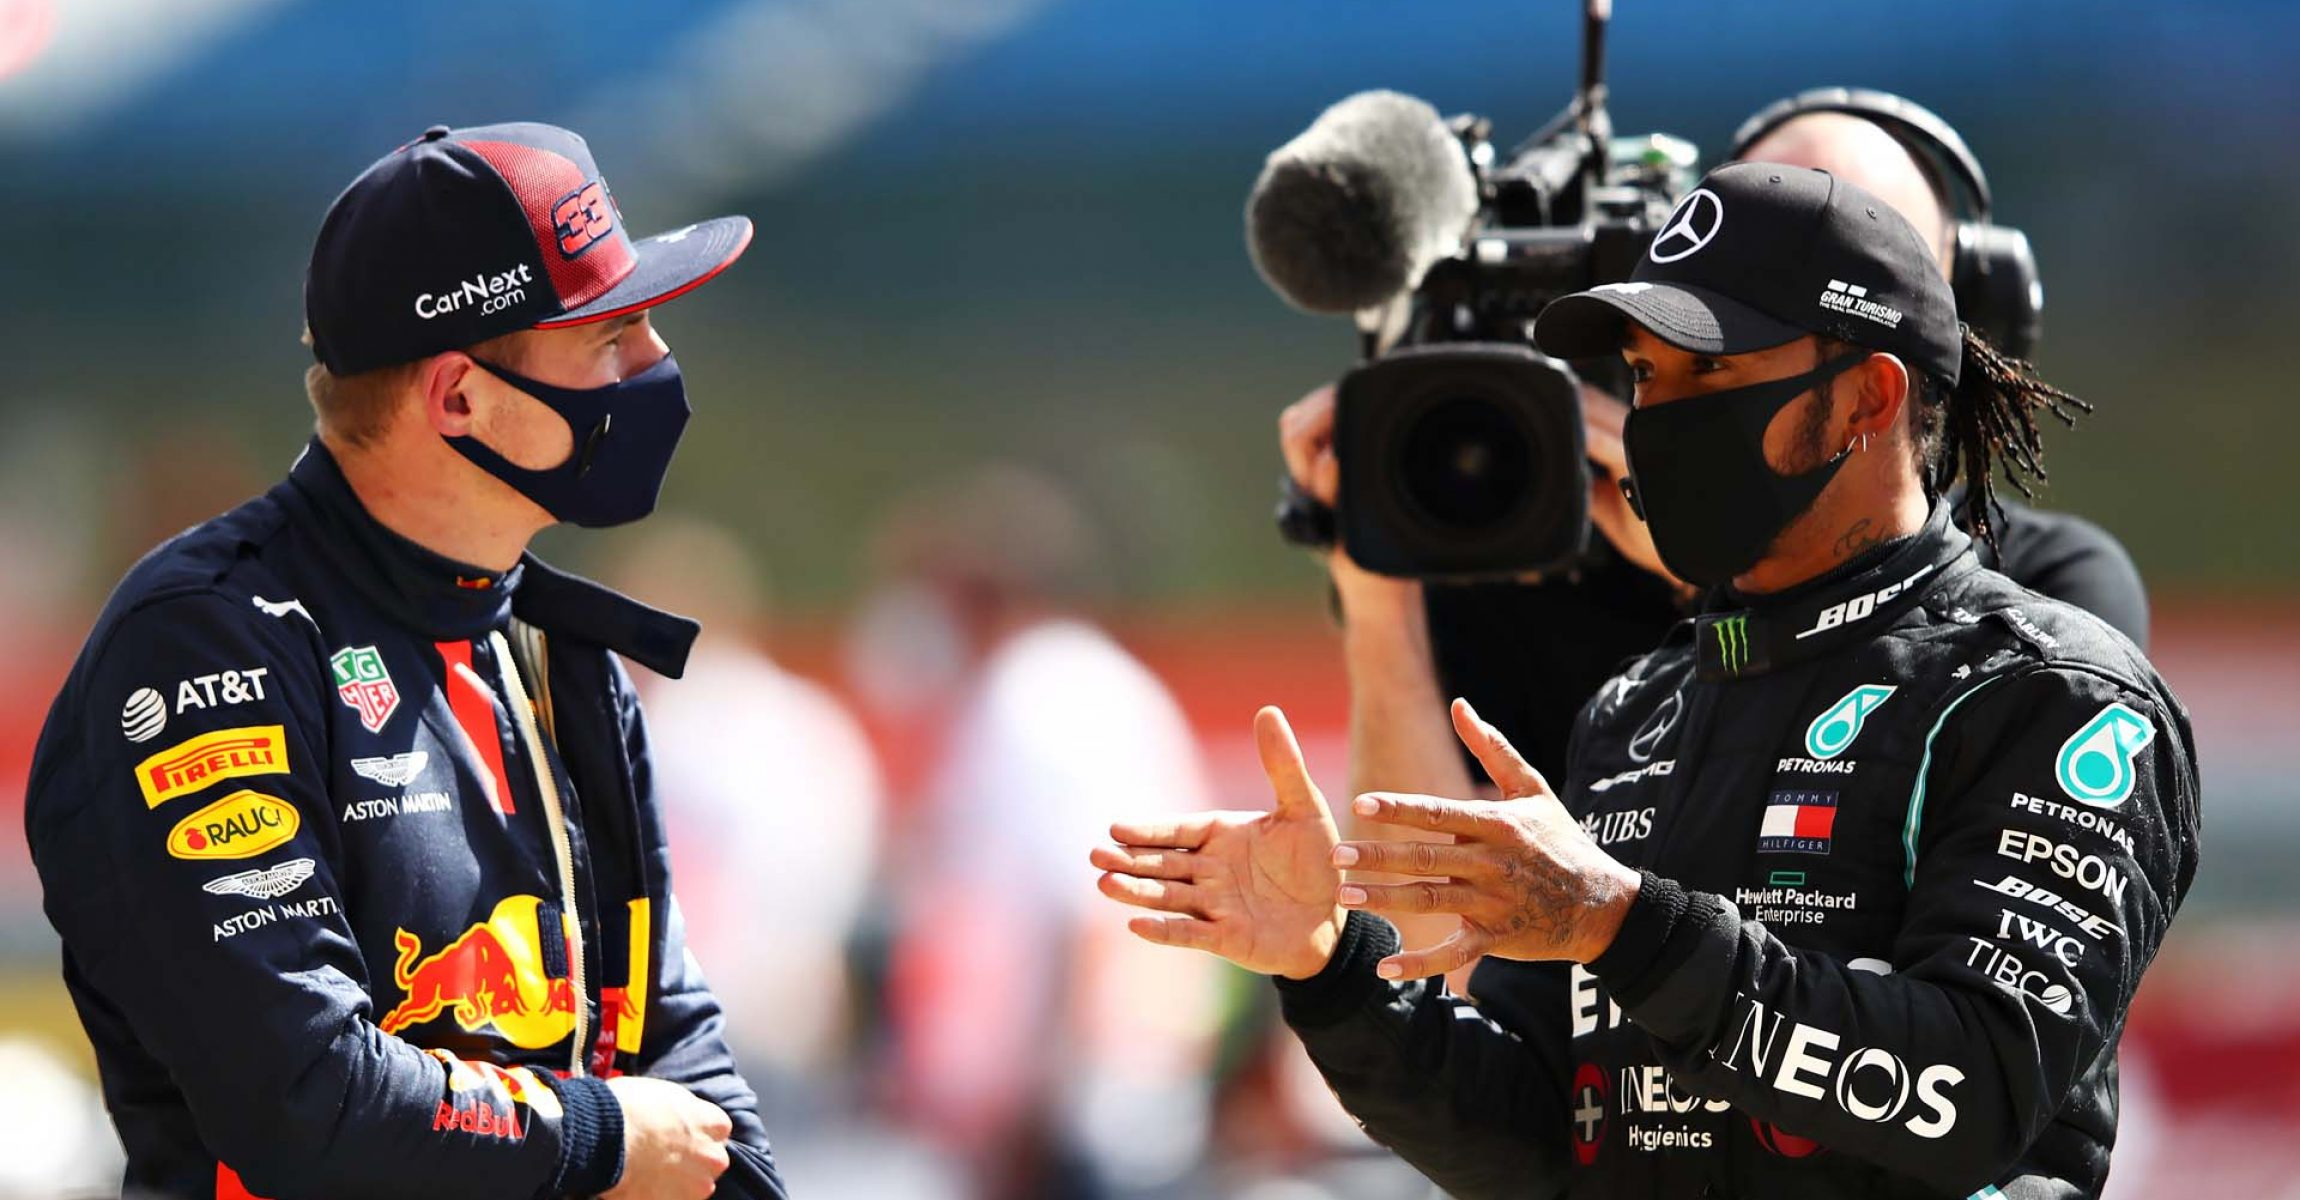 NORTHAMPTON, ENGLAND - AUGUST 02: Race winner Lewis Hamilton of Great Britain and Mercedes GP talks with second placed Max Verstappen of Netherlands and Red Bull Racing in parc ferme during the F1 Grand Prix of Great Britain at Silverstone on August 02, 2020 in Northampton, England. (Photo by Mark Thompson/Getty Images)